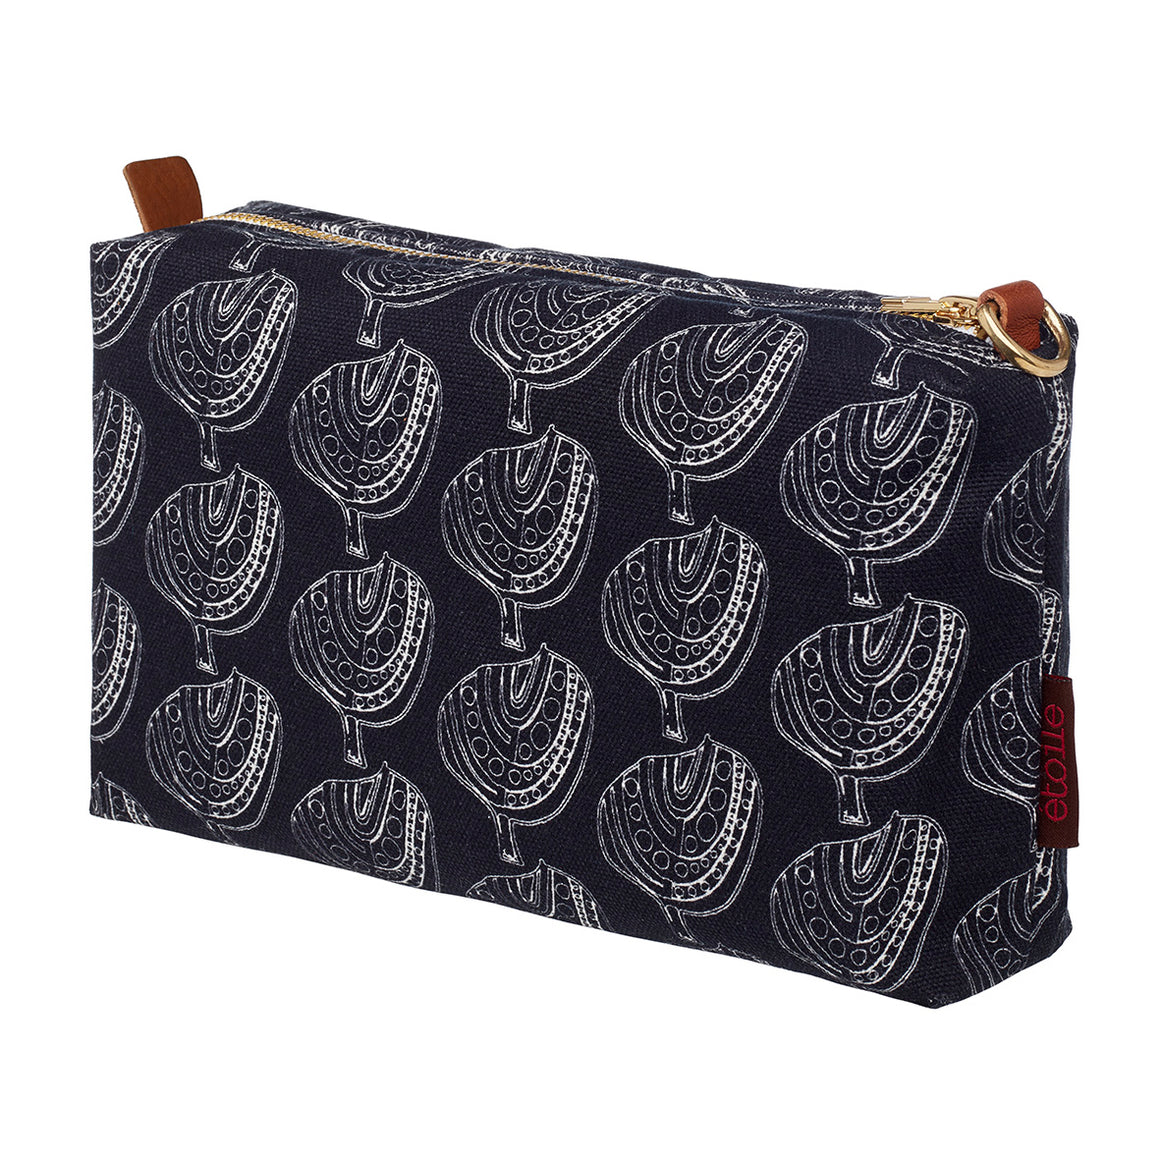 Graphic Apple Tree Pattern Printed Cotton Canvas Toiletry, cosmetic, wash and Travel Bag in Black & White in Canada (USA)